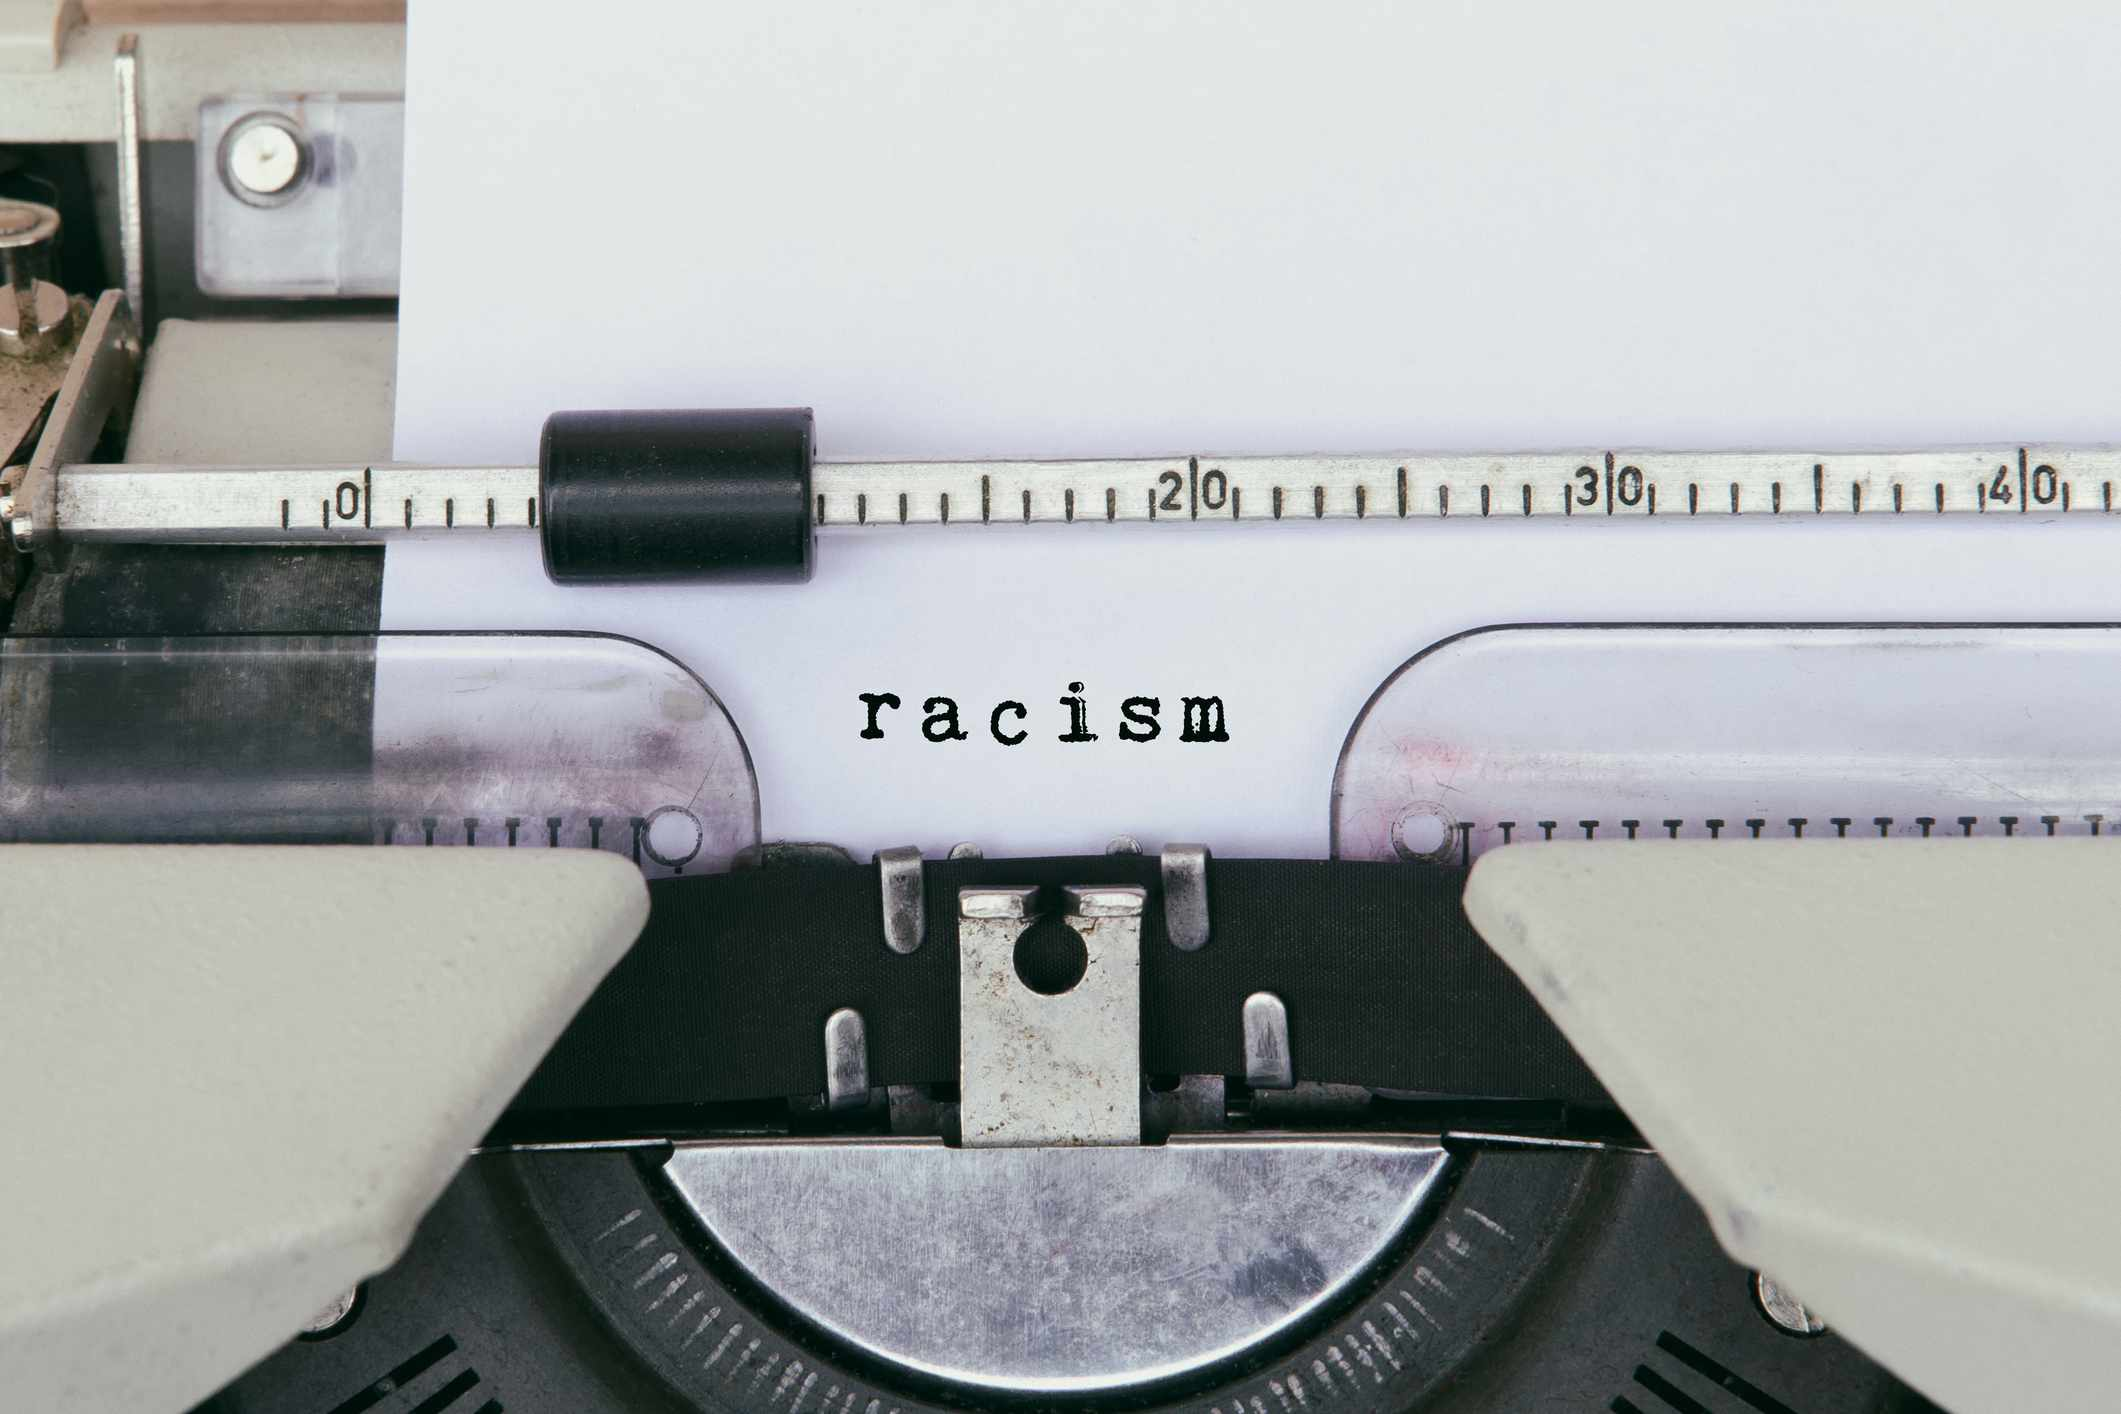 Racism typed on a page in a vintage typewriter.